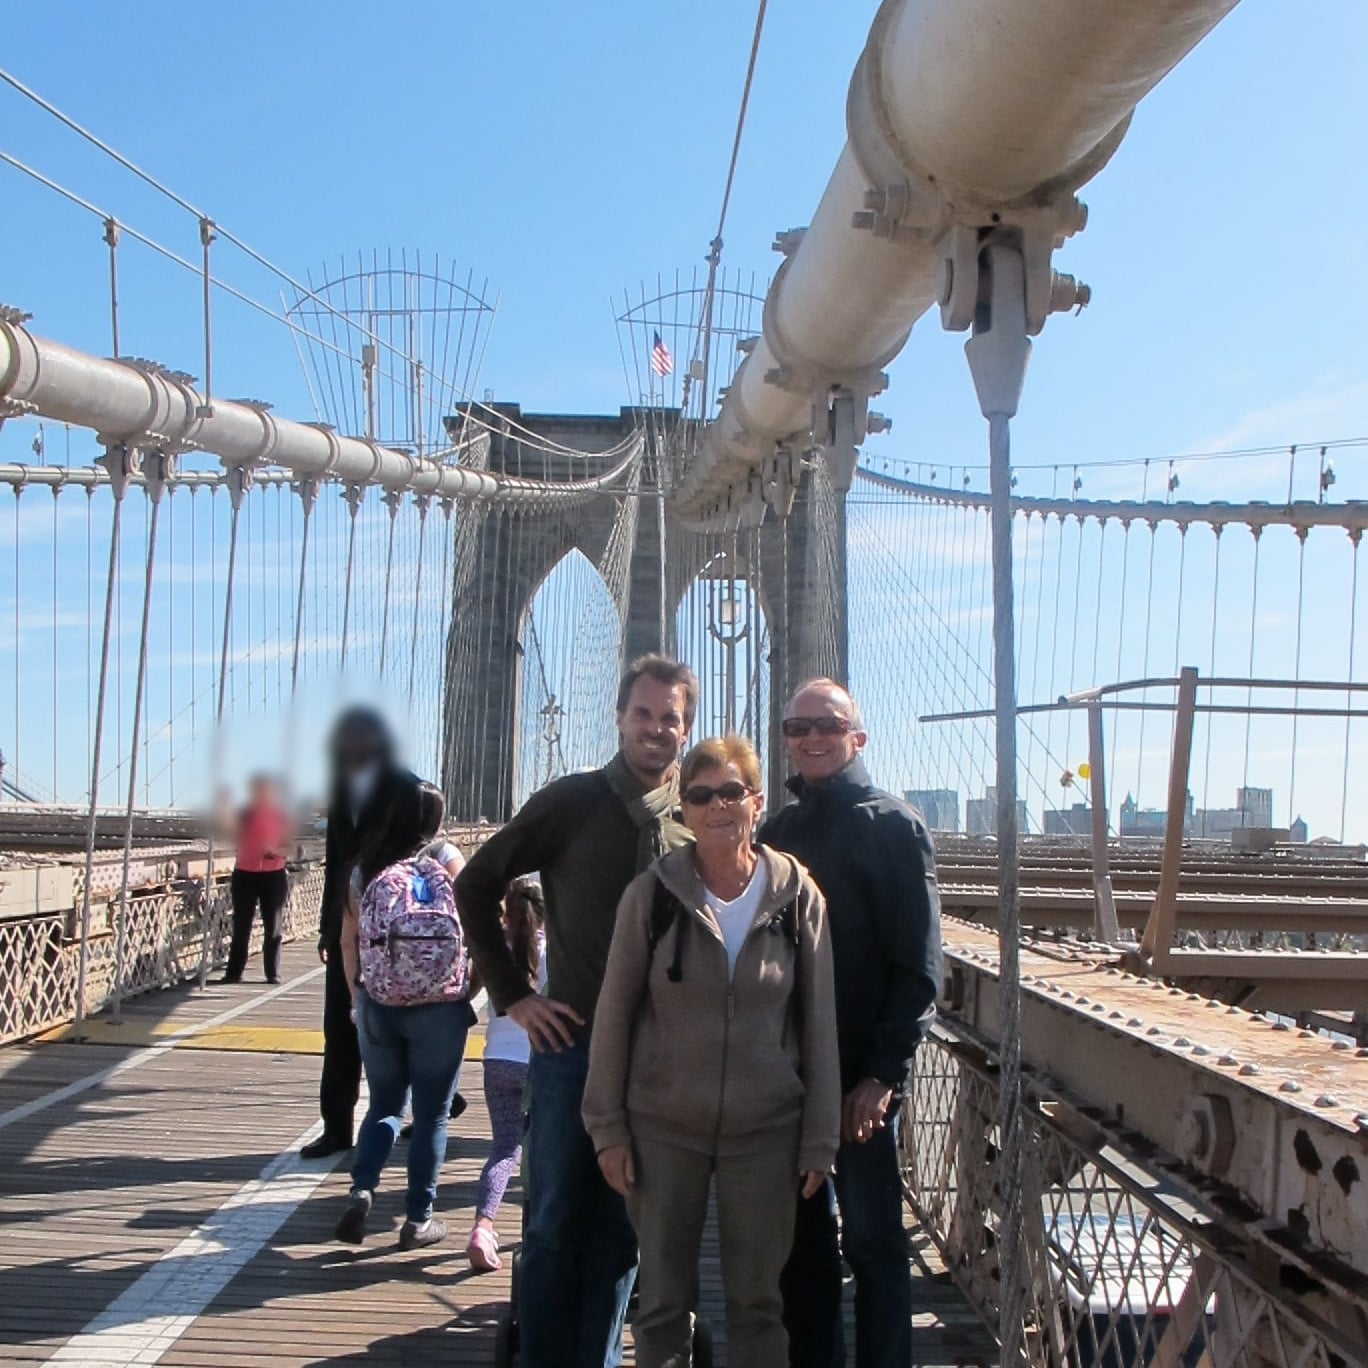 The Brooklyn Bridge is famous for being the first in the world where steel cables were used for suspension. Photo: Bruny Nieves